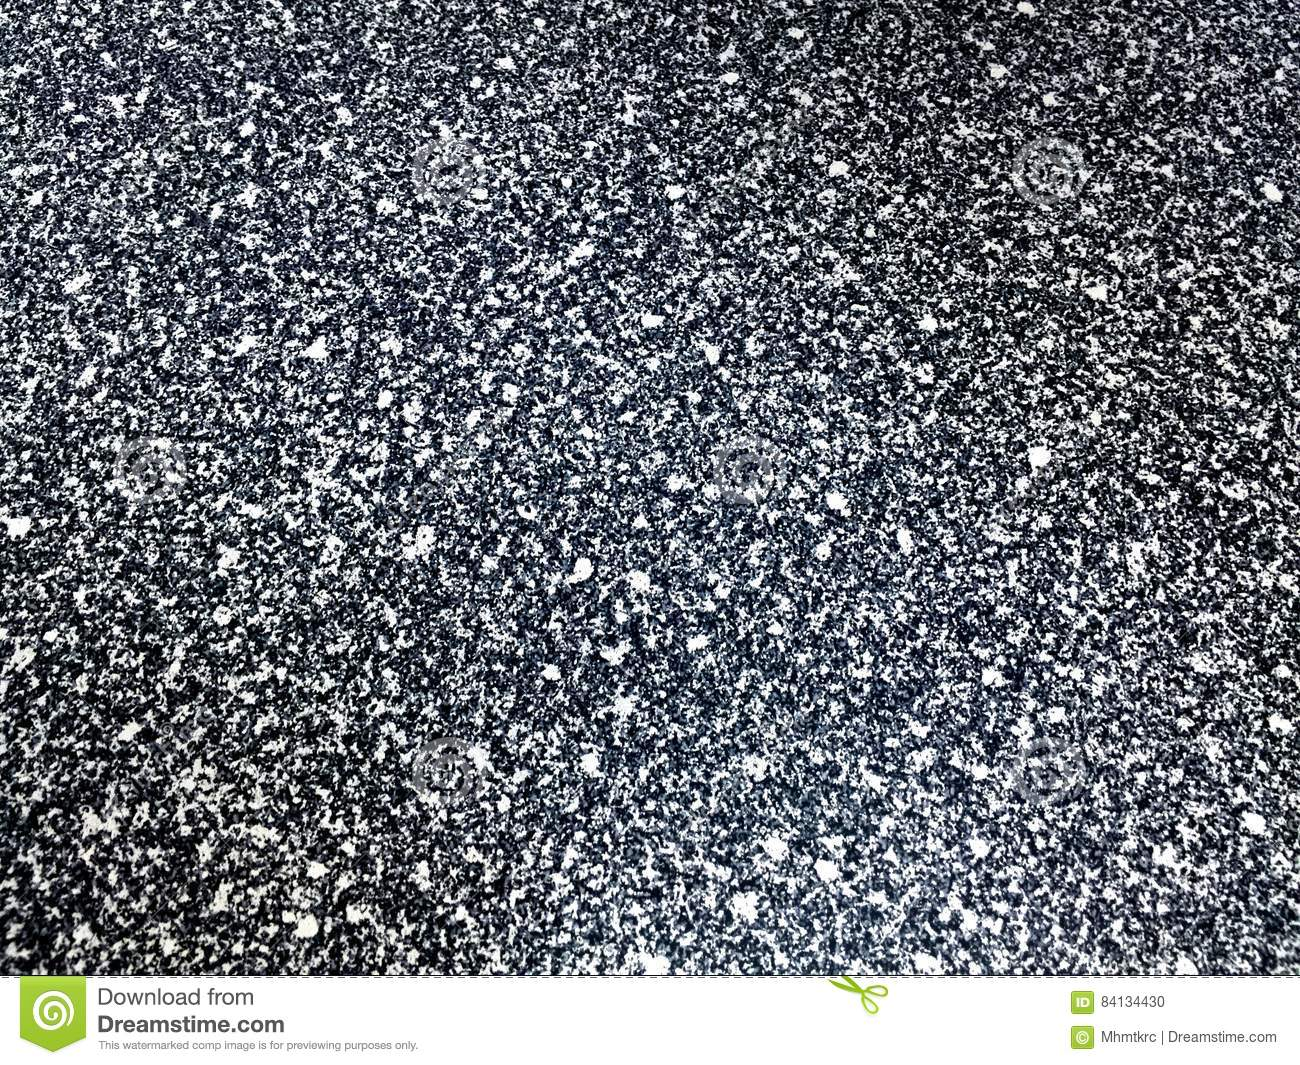 White flakes black background texture